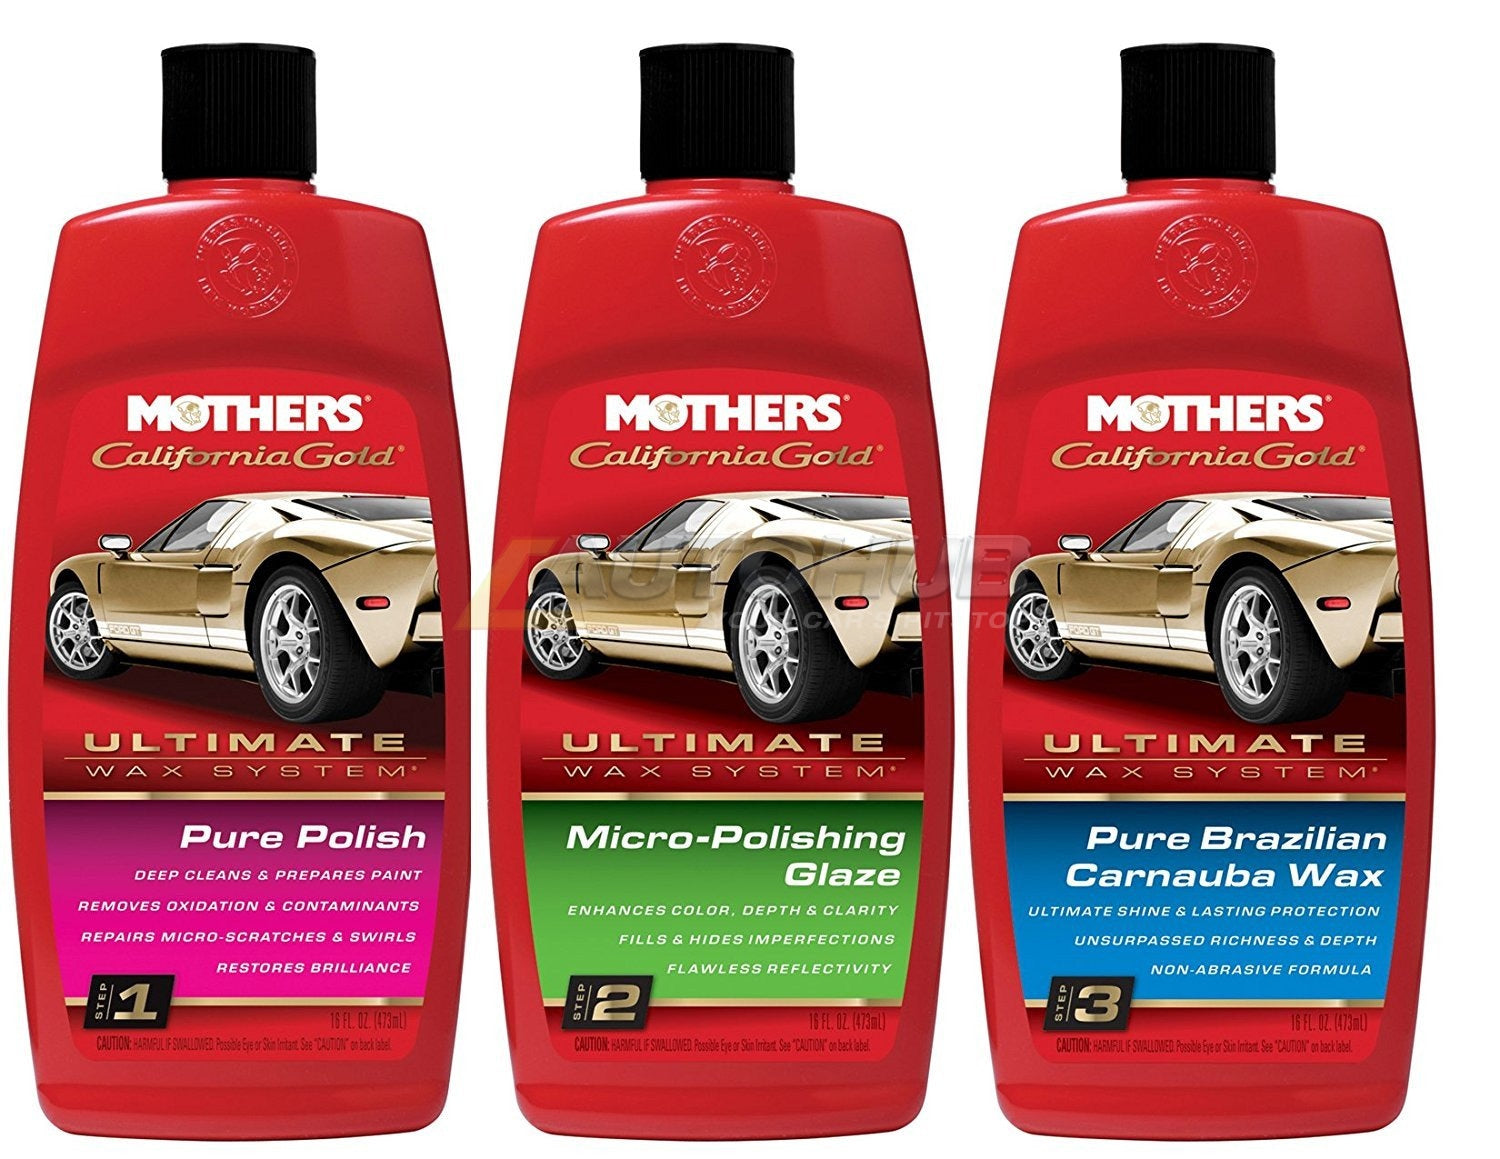 Mothers Ultimate Wax System (w/Liquid Wax)